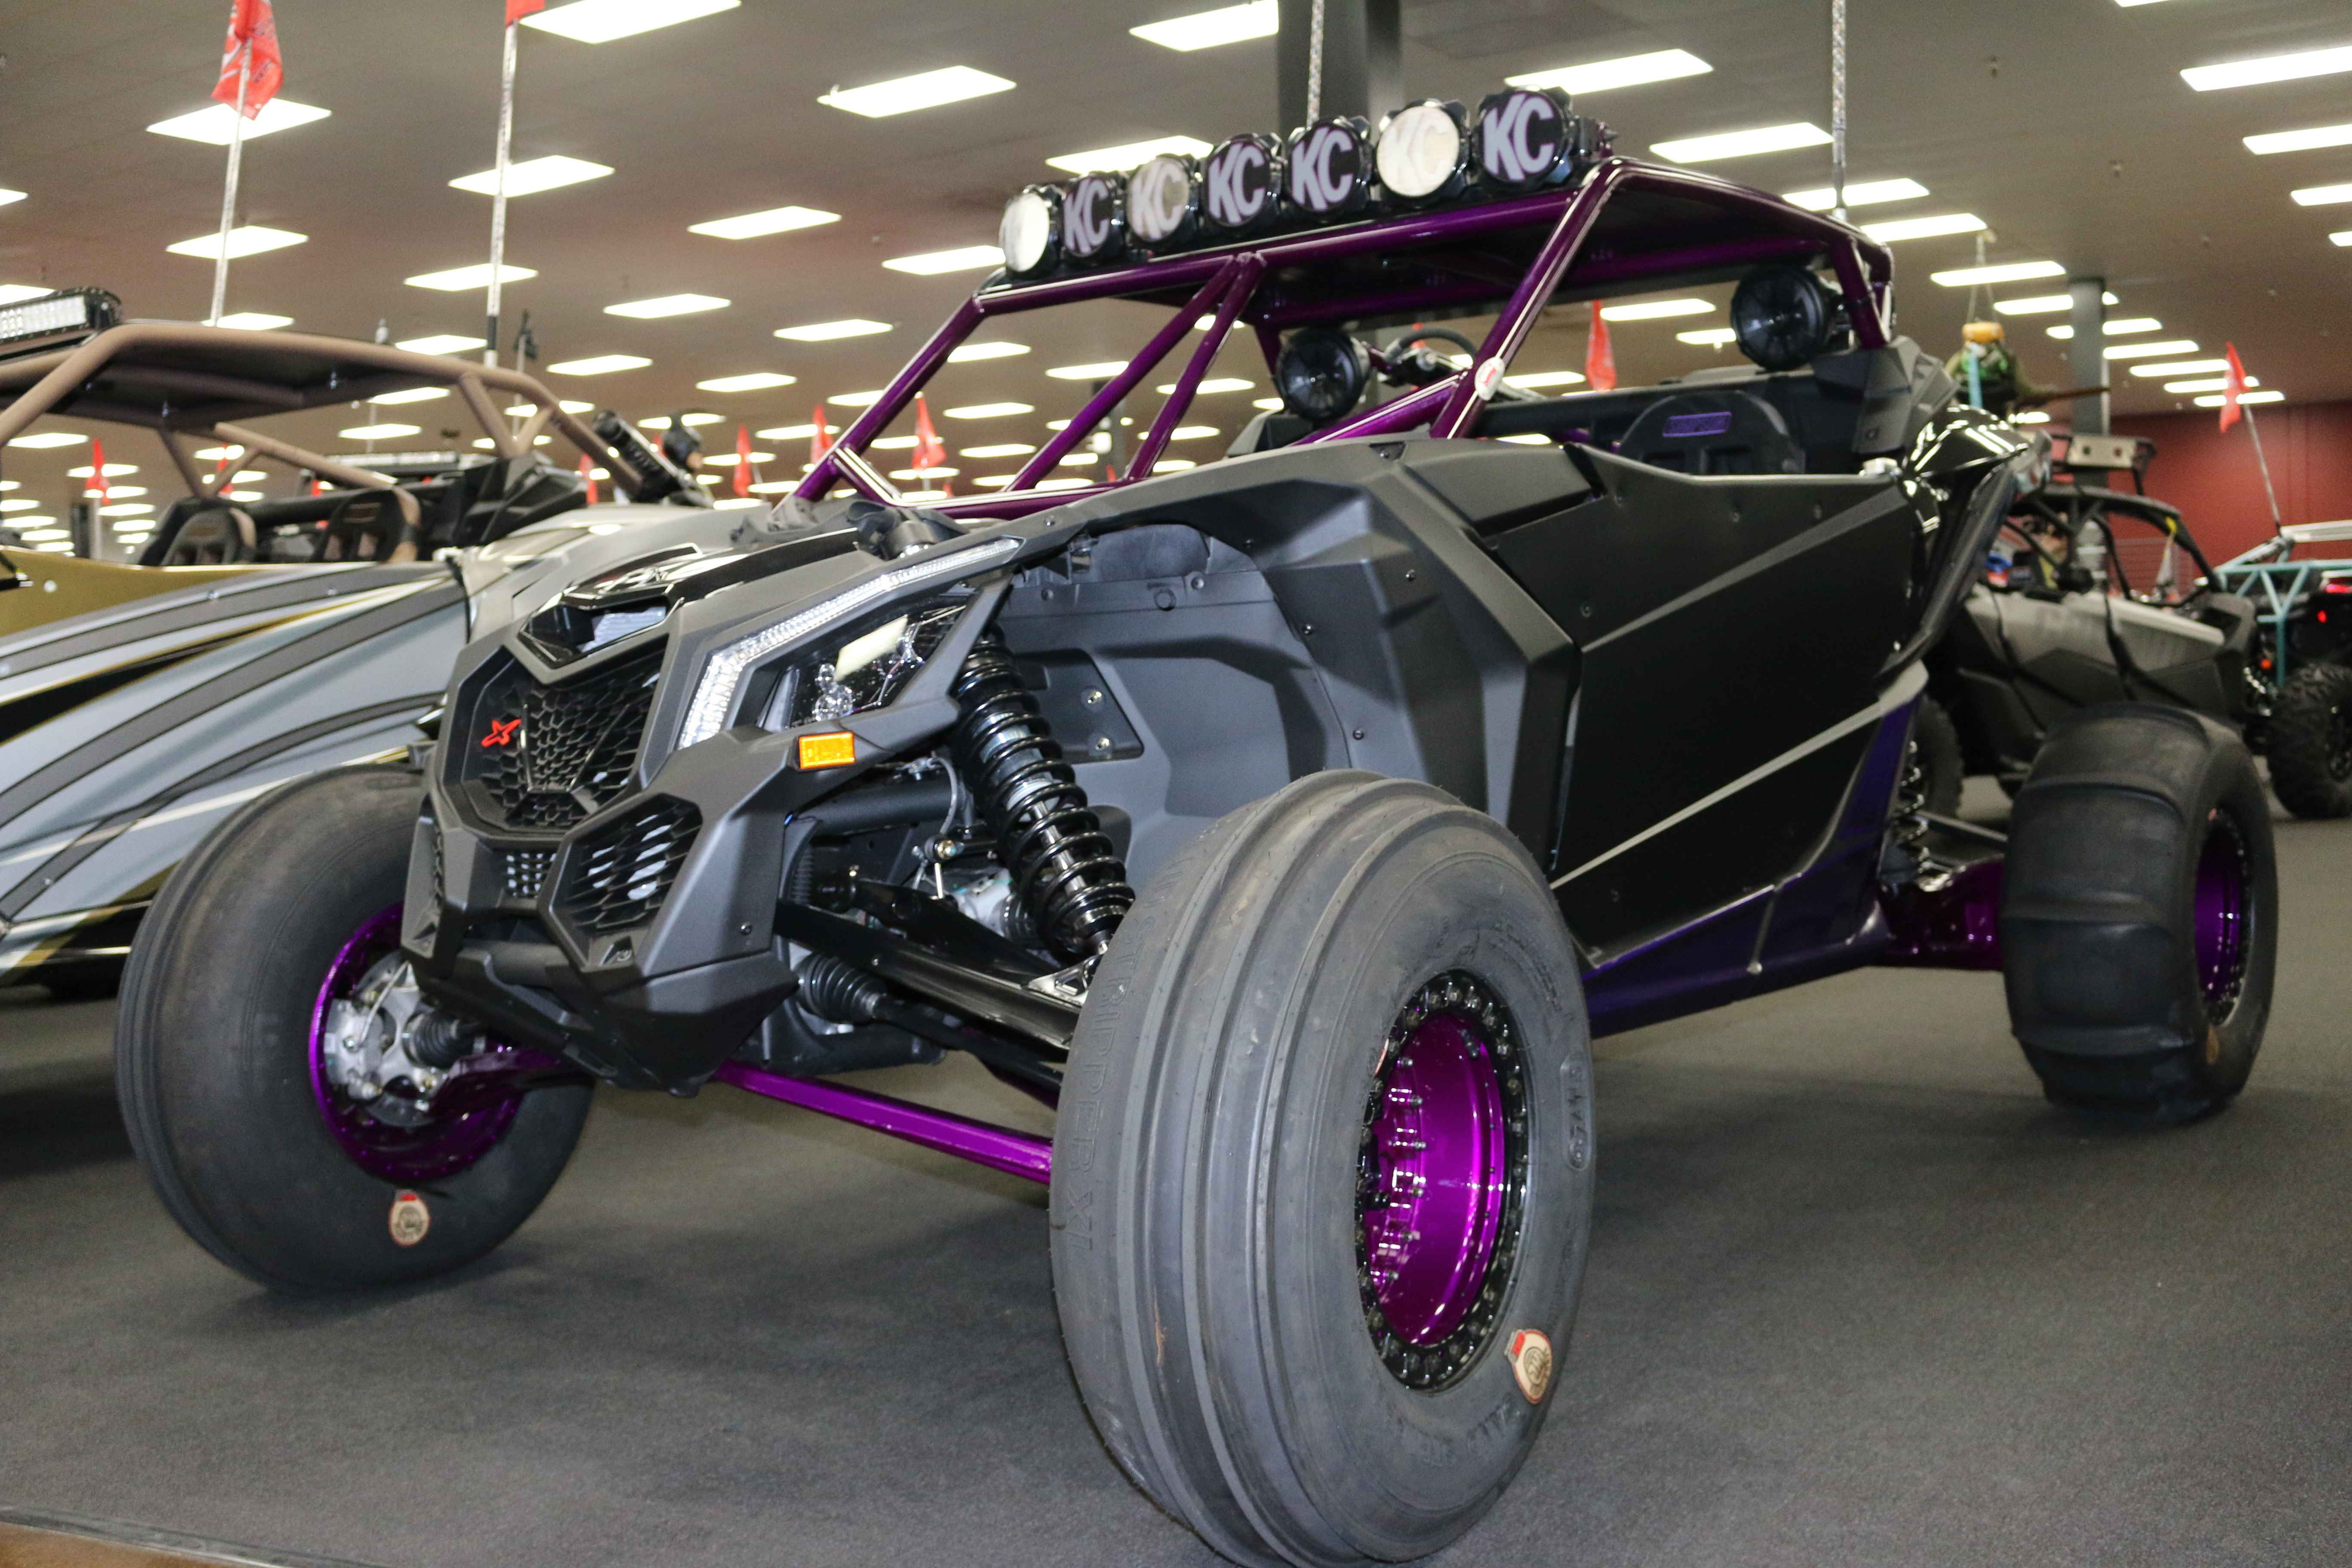 new 2018 can am maverick x3 xrs turbo r atvs for sale in california on atv trades. Black Bedroom Furniture Sets. Home Design Ideas